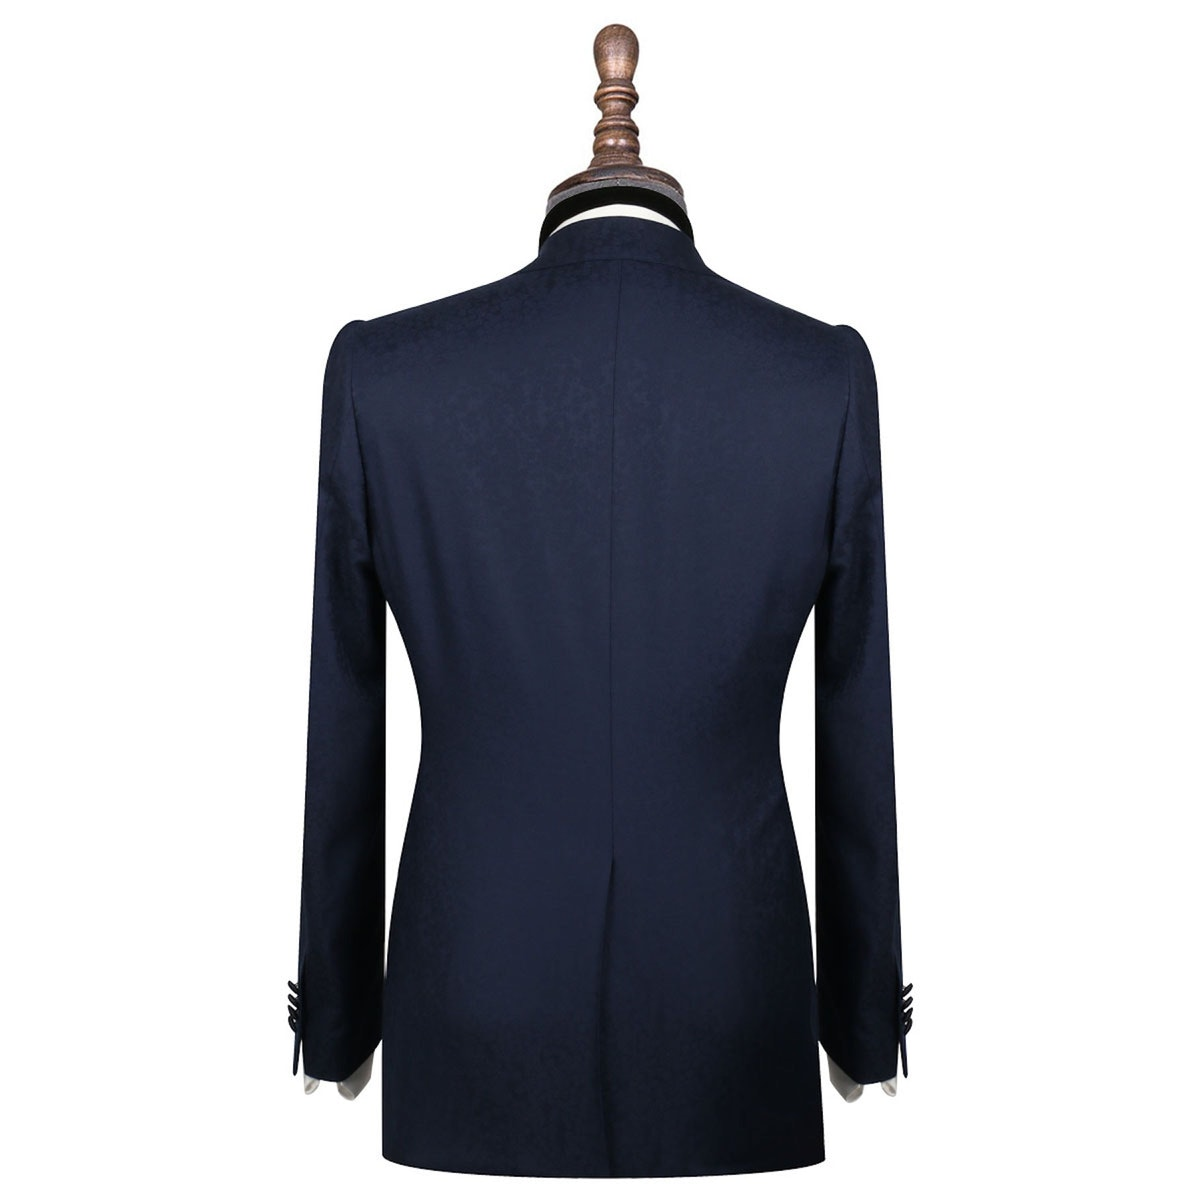 InStitchu Collection The Baggio Navy Floral Wool Dinner Jacket